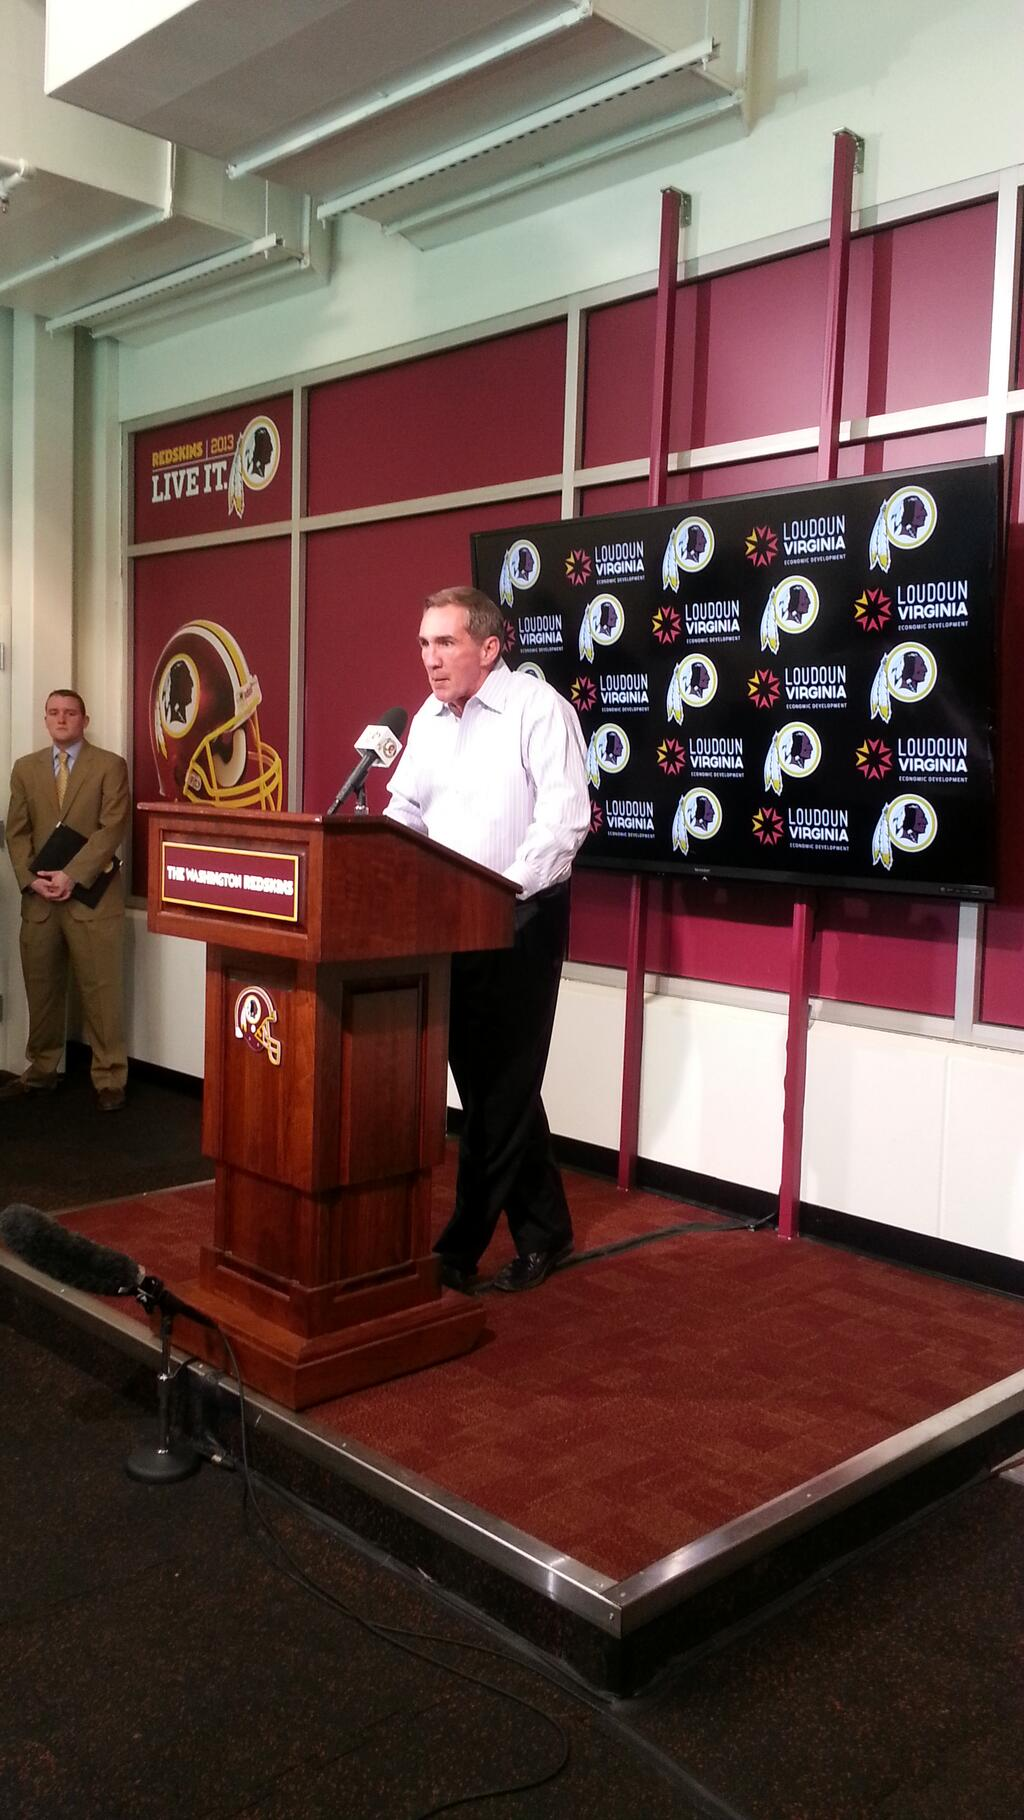 Mike Shanahan fired as Redskins coach